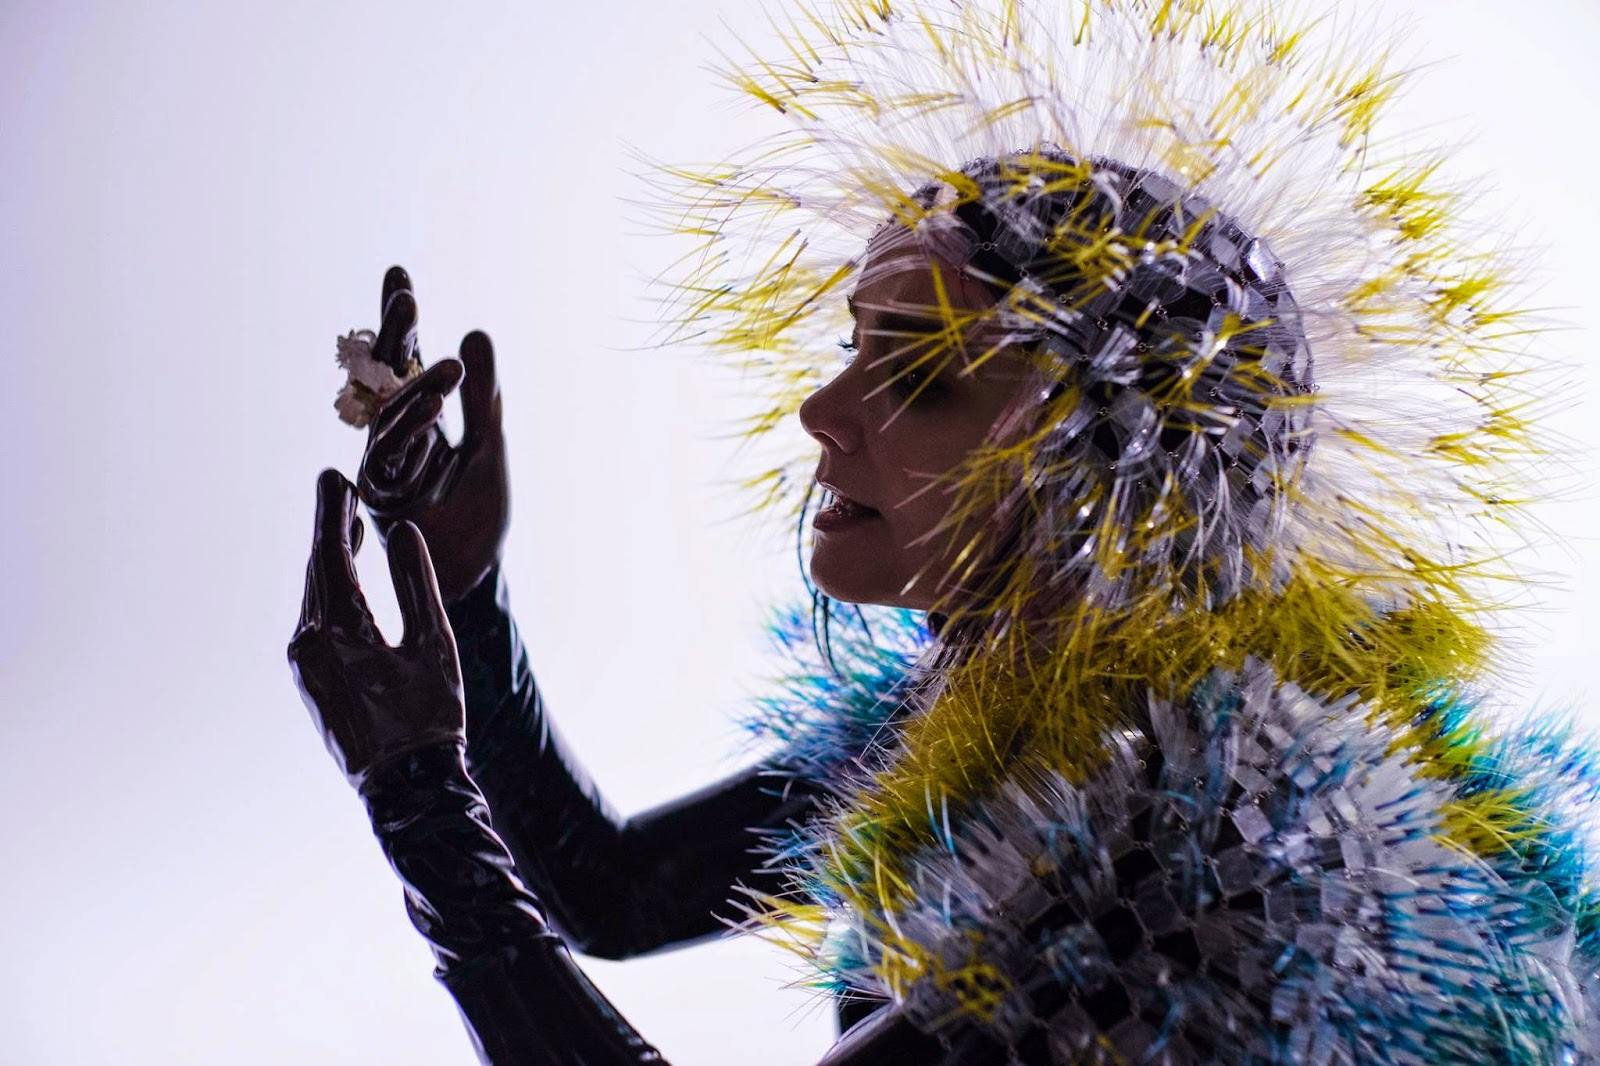 Watch Björk's 360° music video